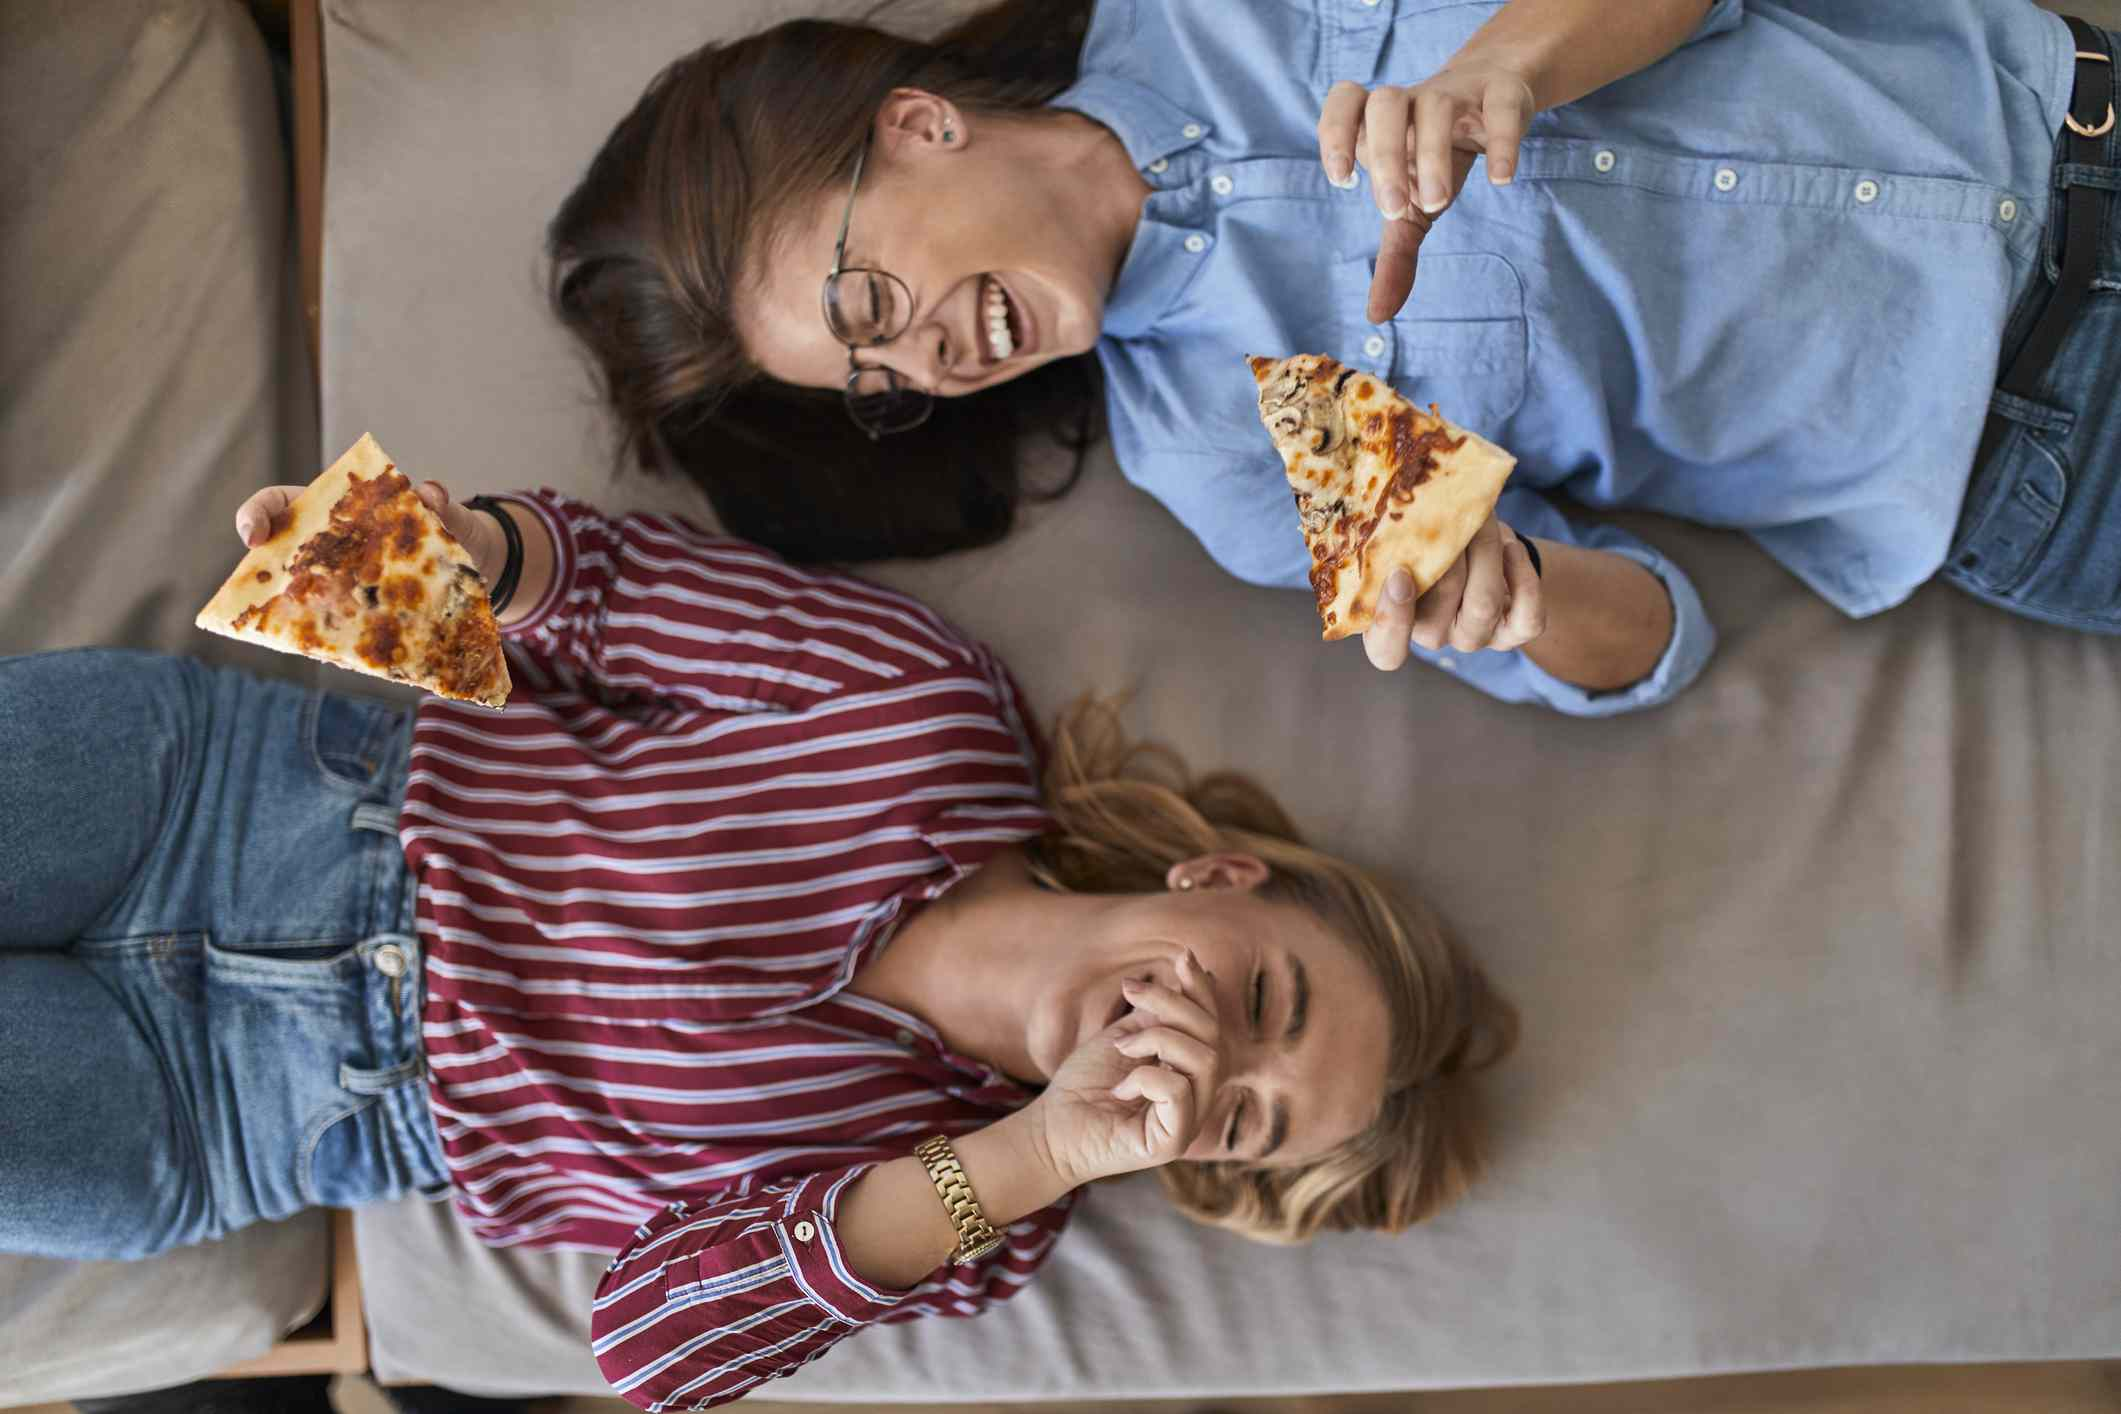 two women in bed with pizza